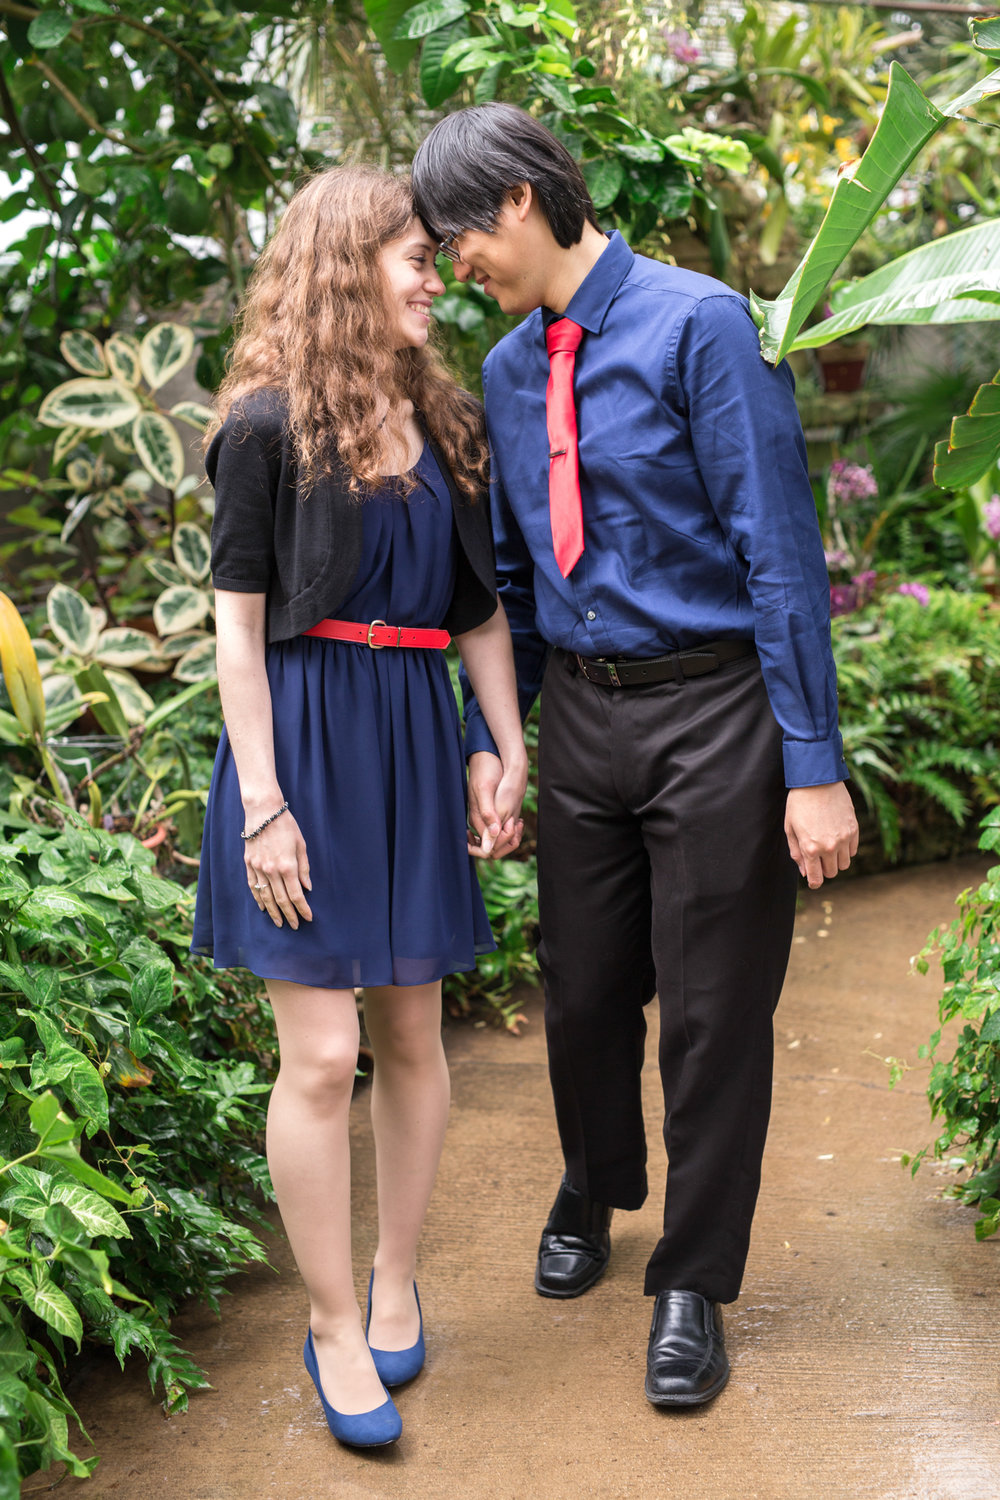 luthy botanical gardens greenhouse engagement biracial couple peoria centrail illinois wedding photographer photographers bloomington normal illinois valley lasalle peru ottawa-17.jpg